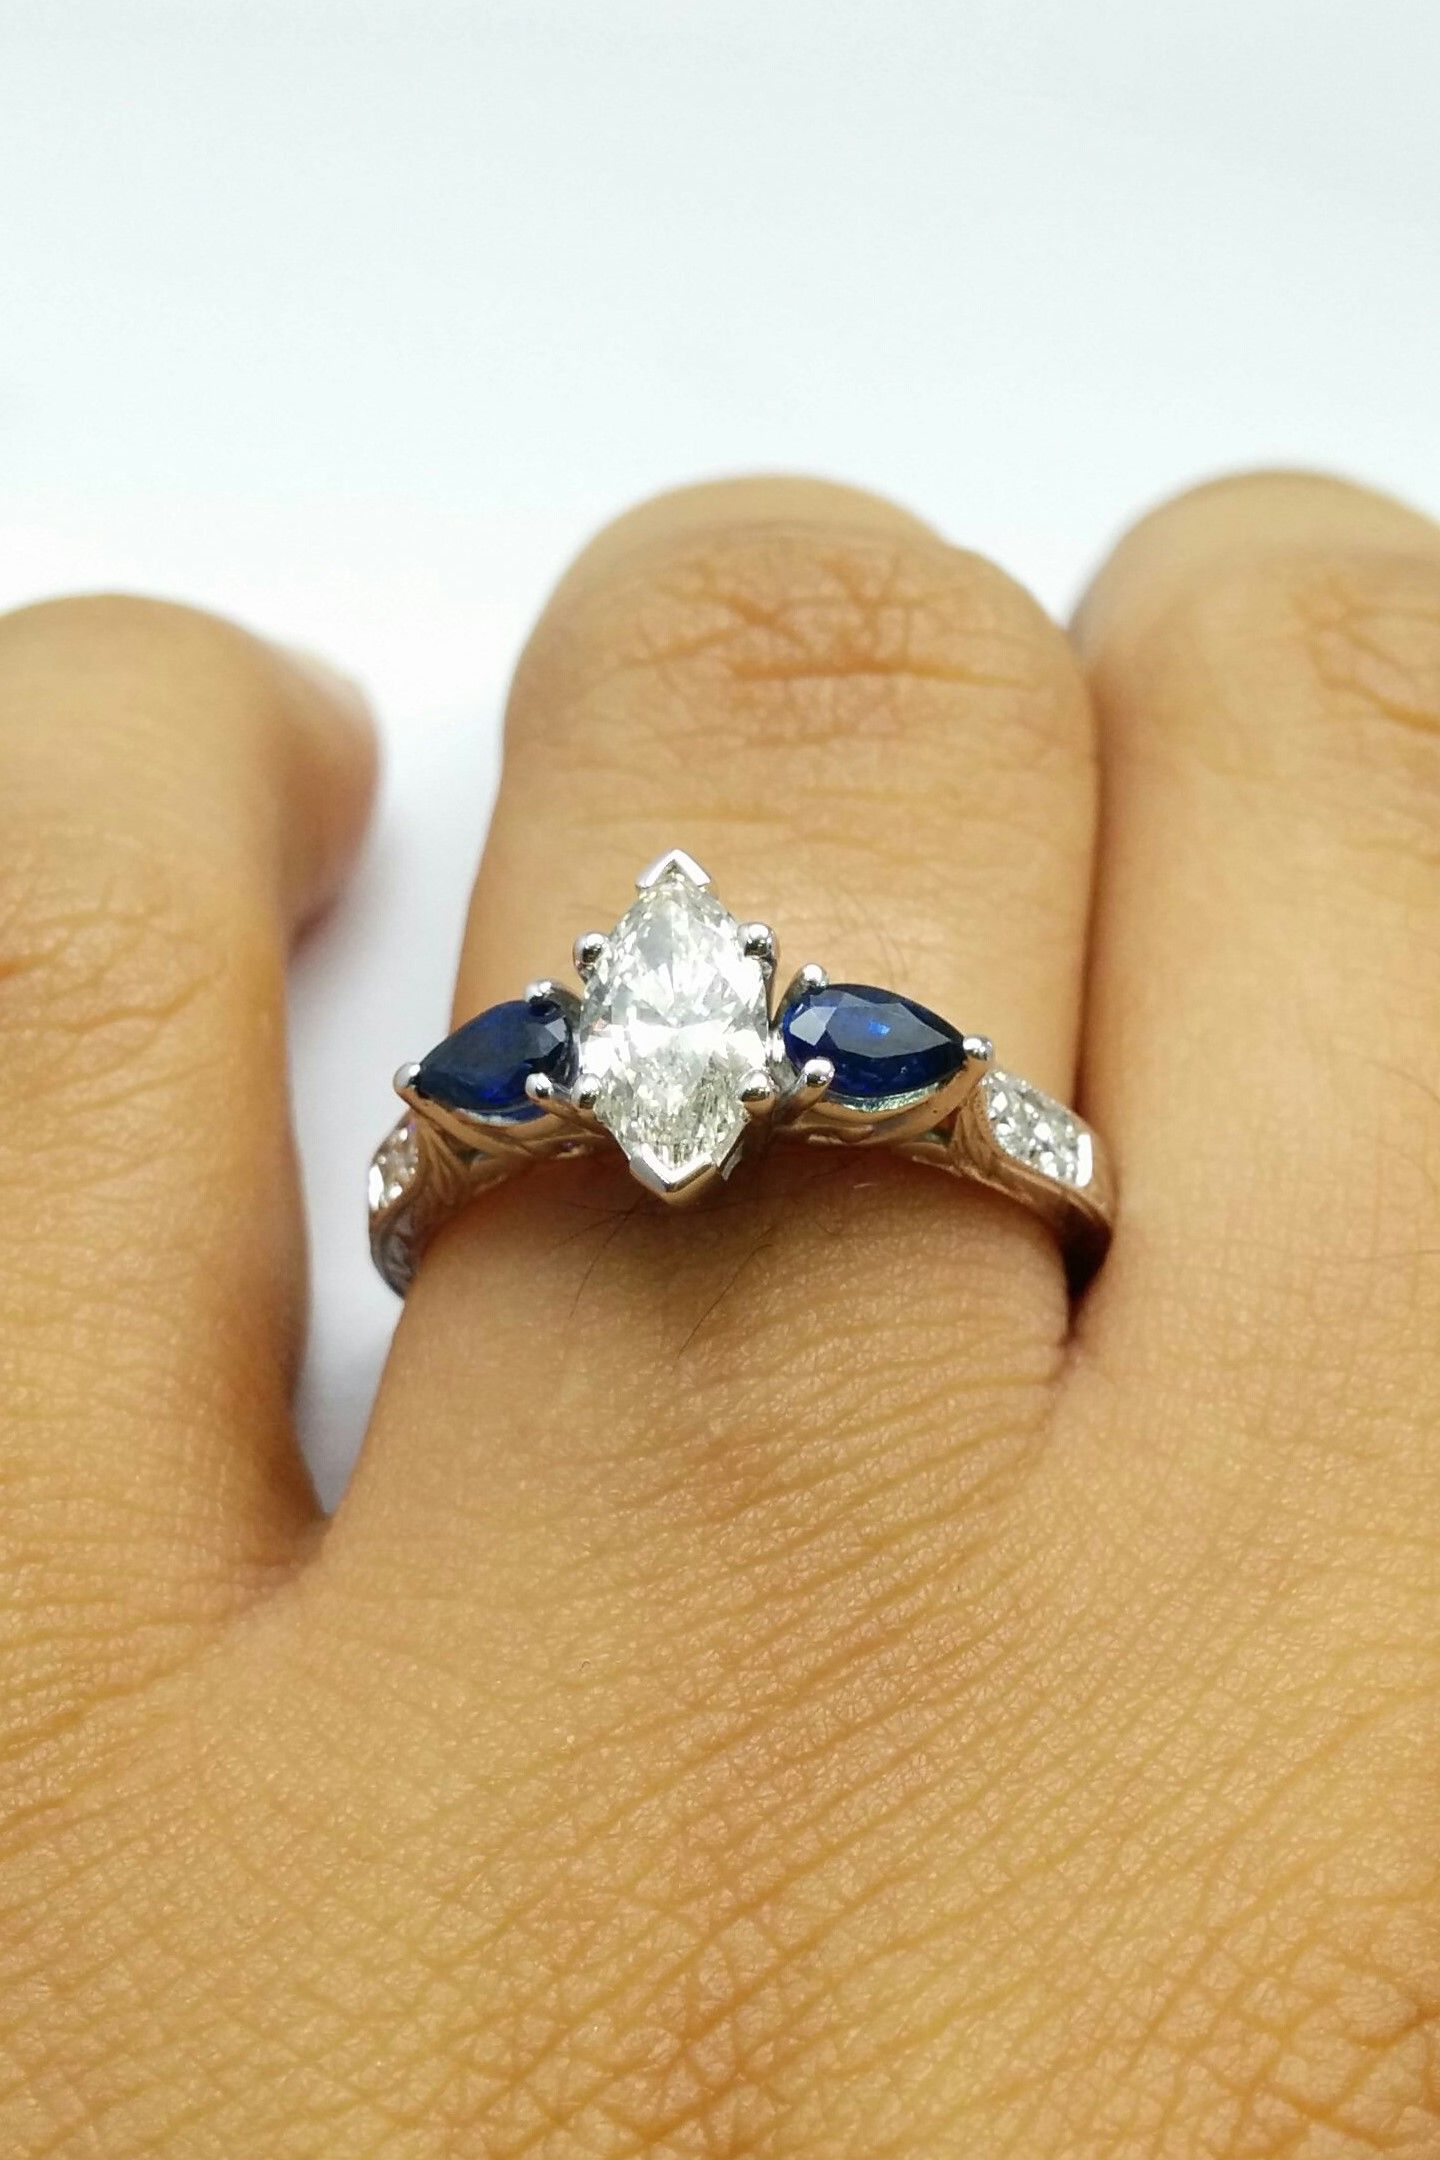 jewelry round set halo prong diamond blue cut nl shared white in rings with engagement ring topaz wg and gold ice plait wedding